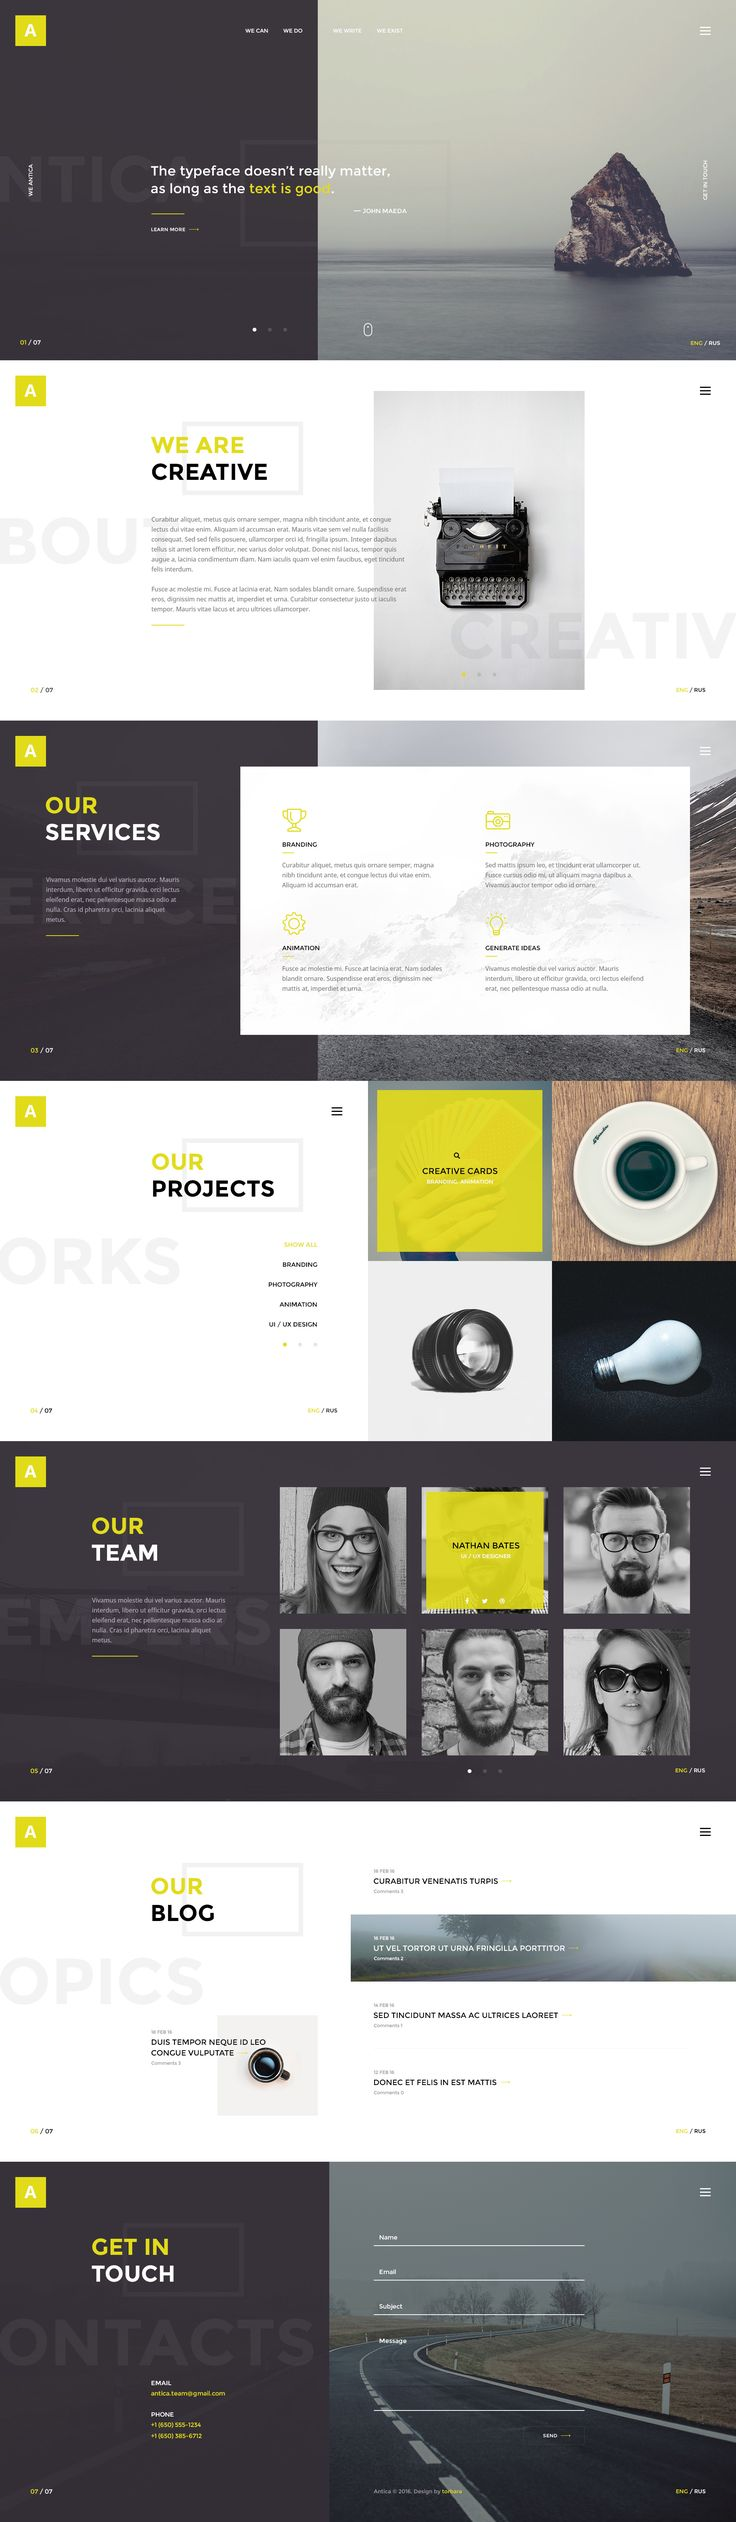 Antica — Multipurpose Business Agency/Personal Portfolio PSD Template by torbara